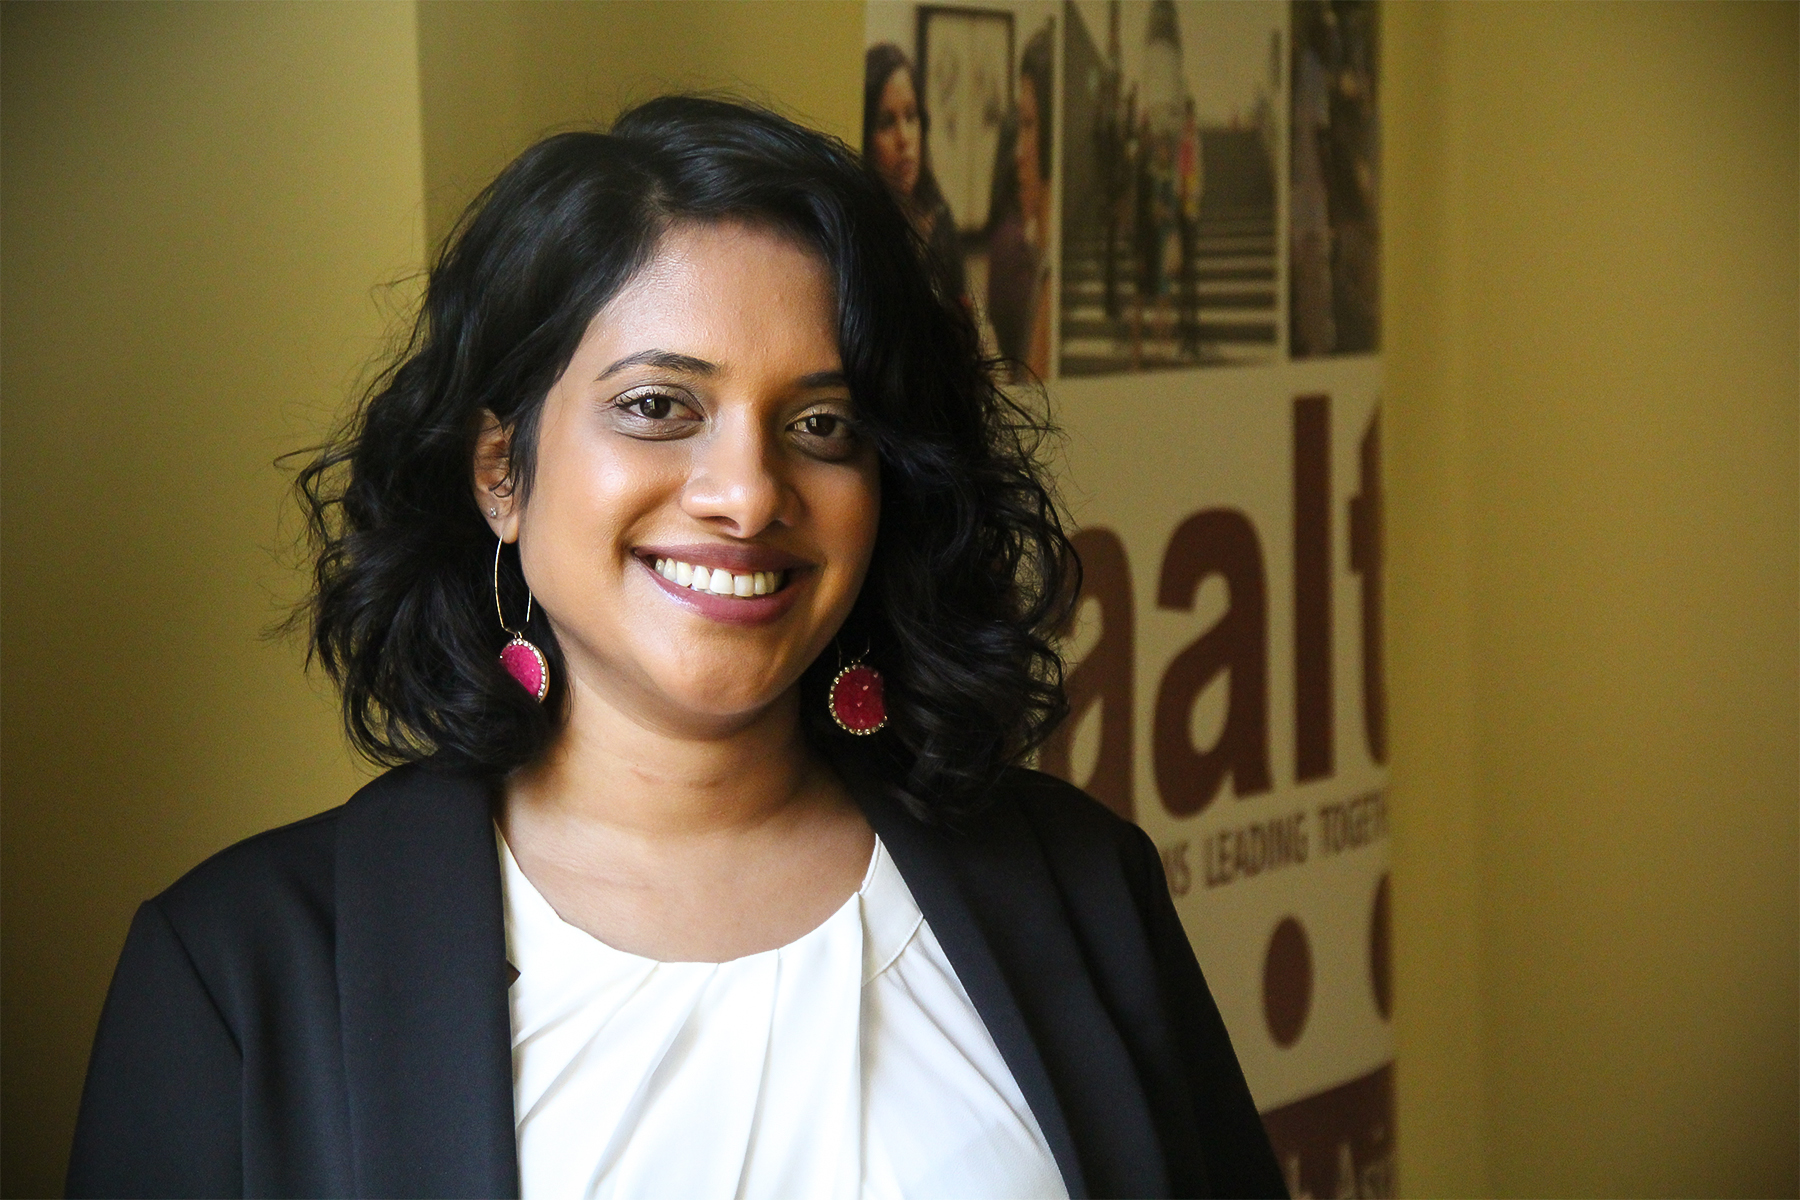 11a2f832f27 Lakshmi comes to SAALT with a deep commitment to racial justice. Most  recently she served as the Policy Director for The Praxis Project, a  Washington-DC ...